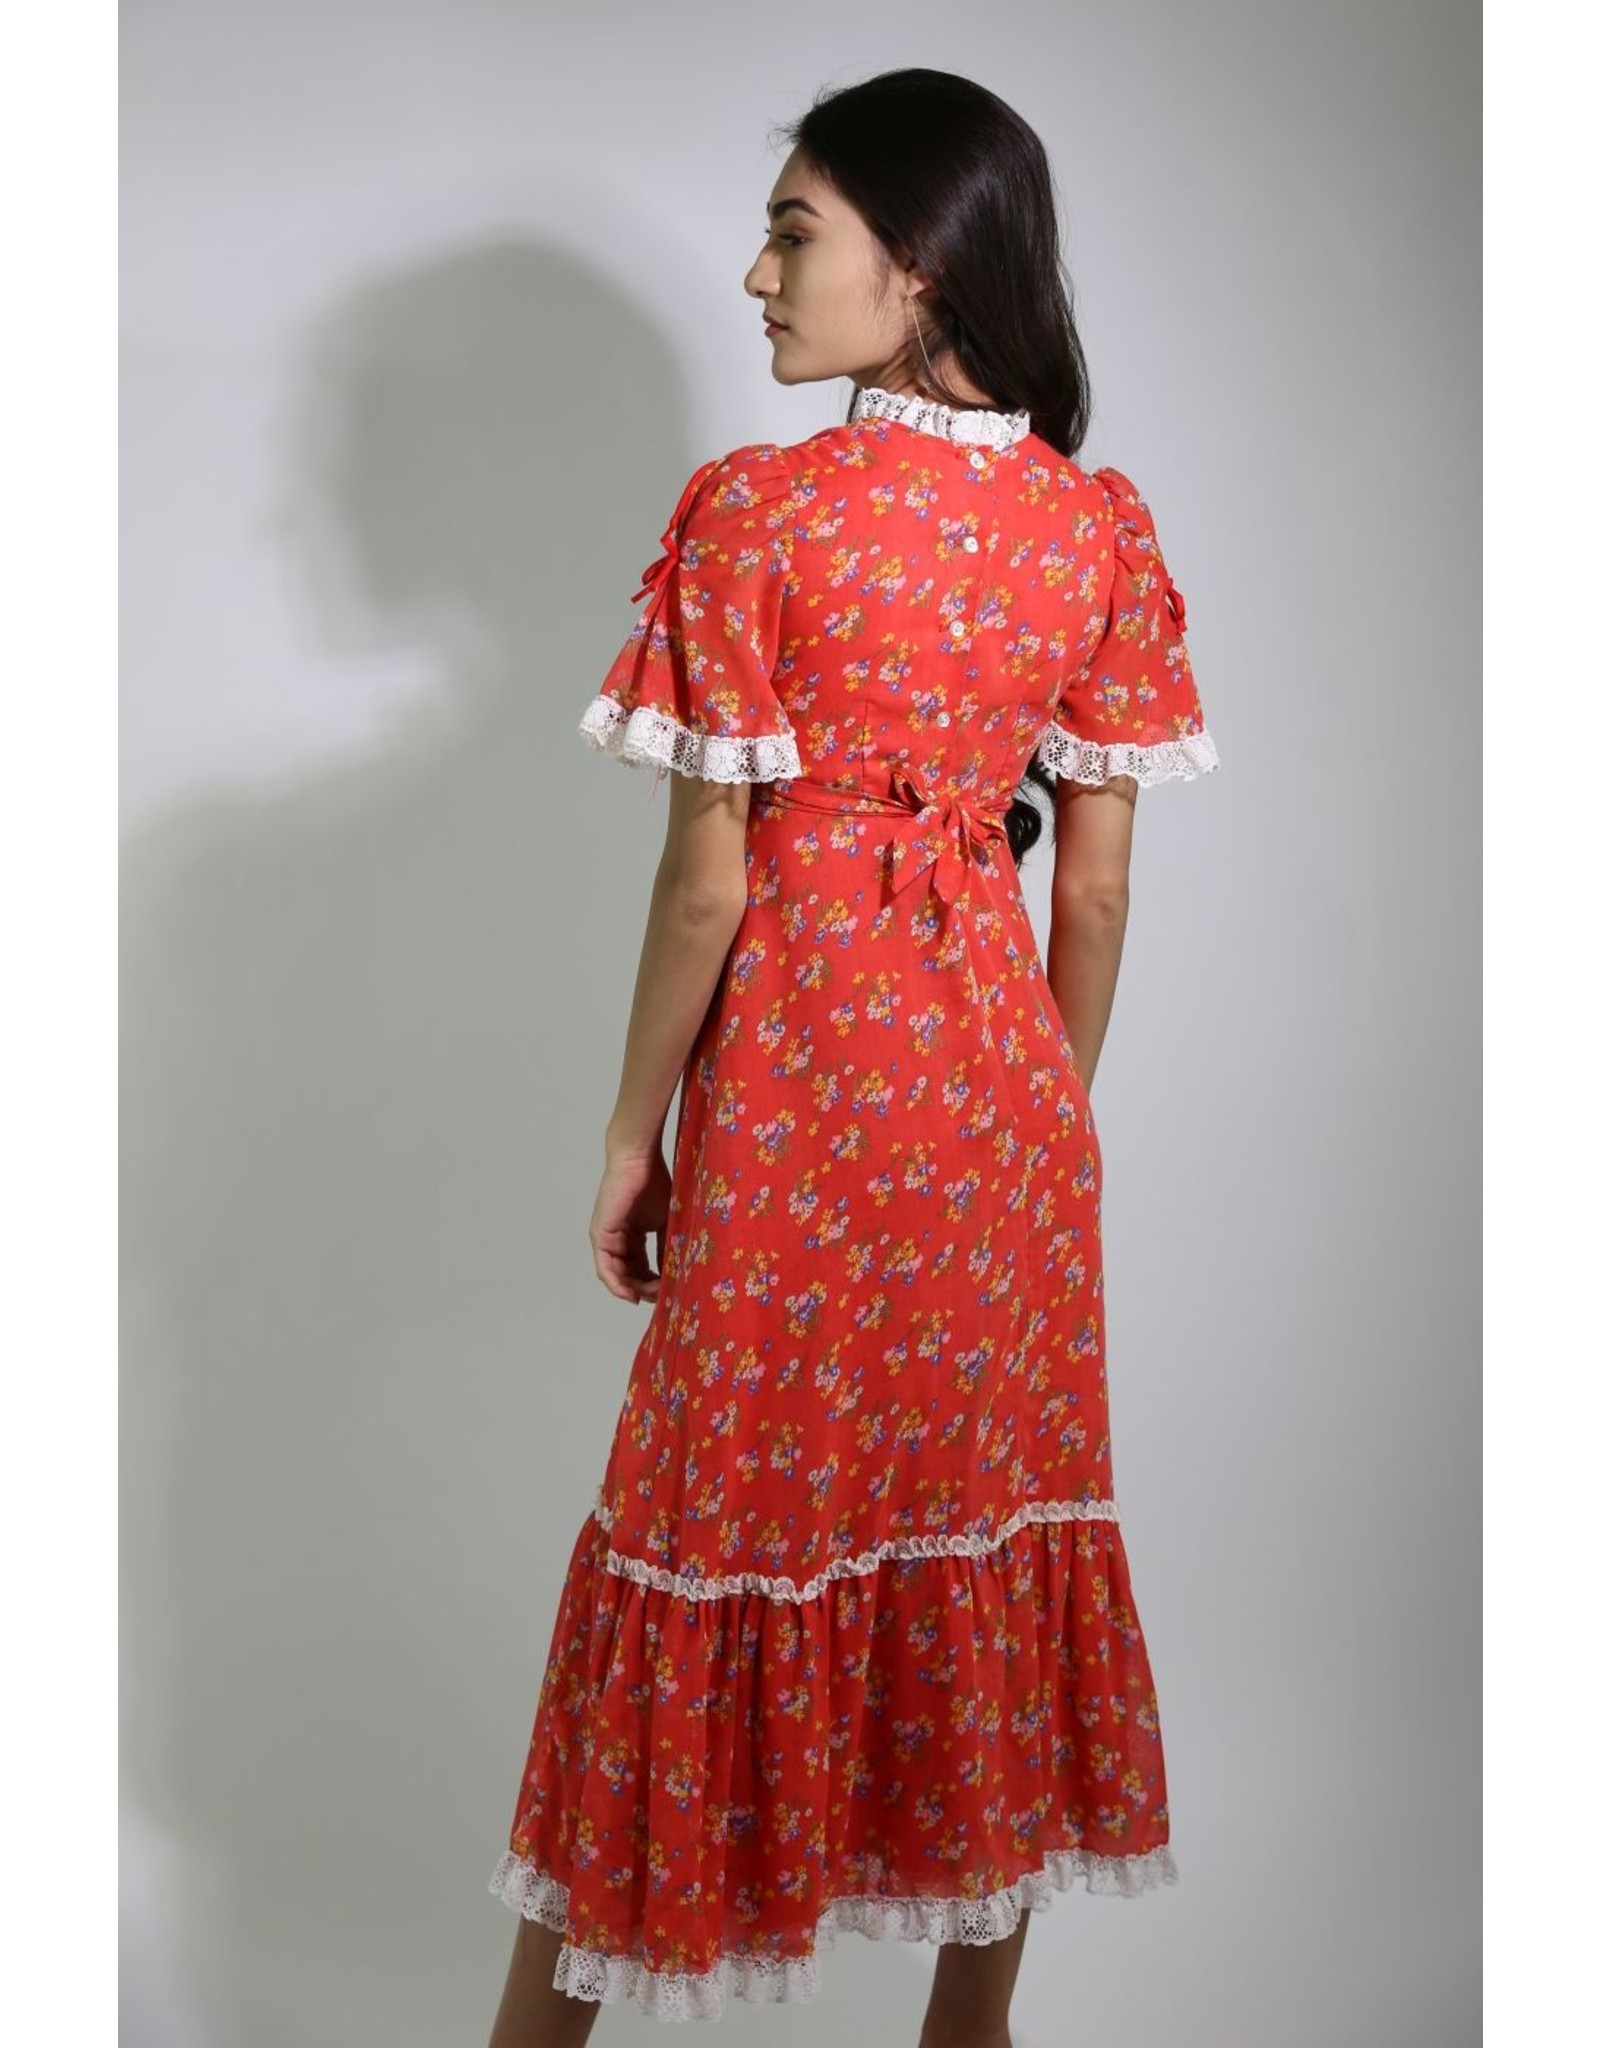 1970's Red Floral Prairie Dress